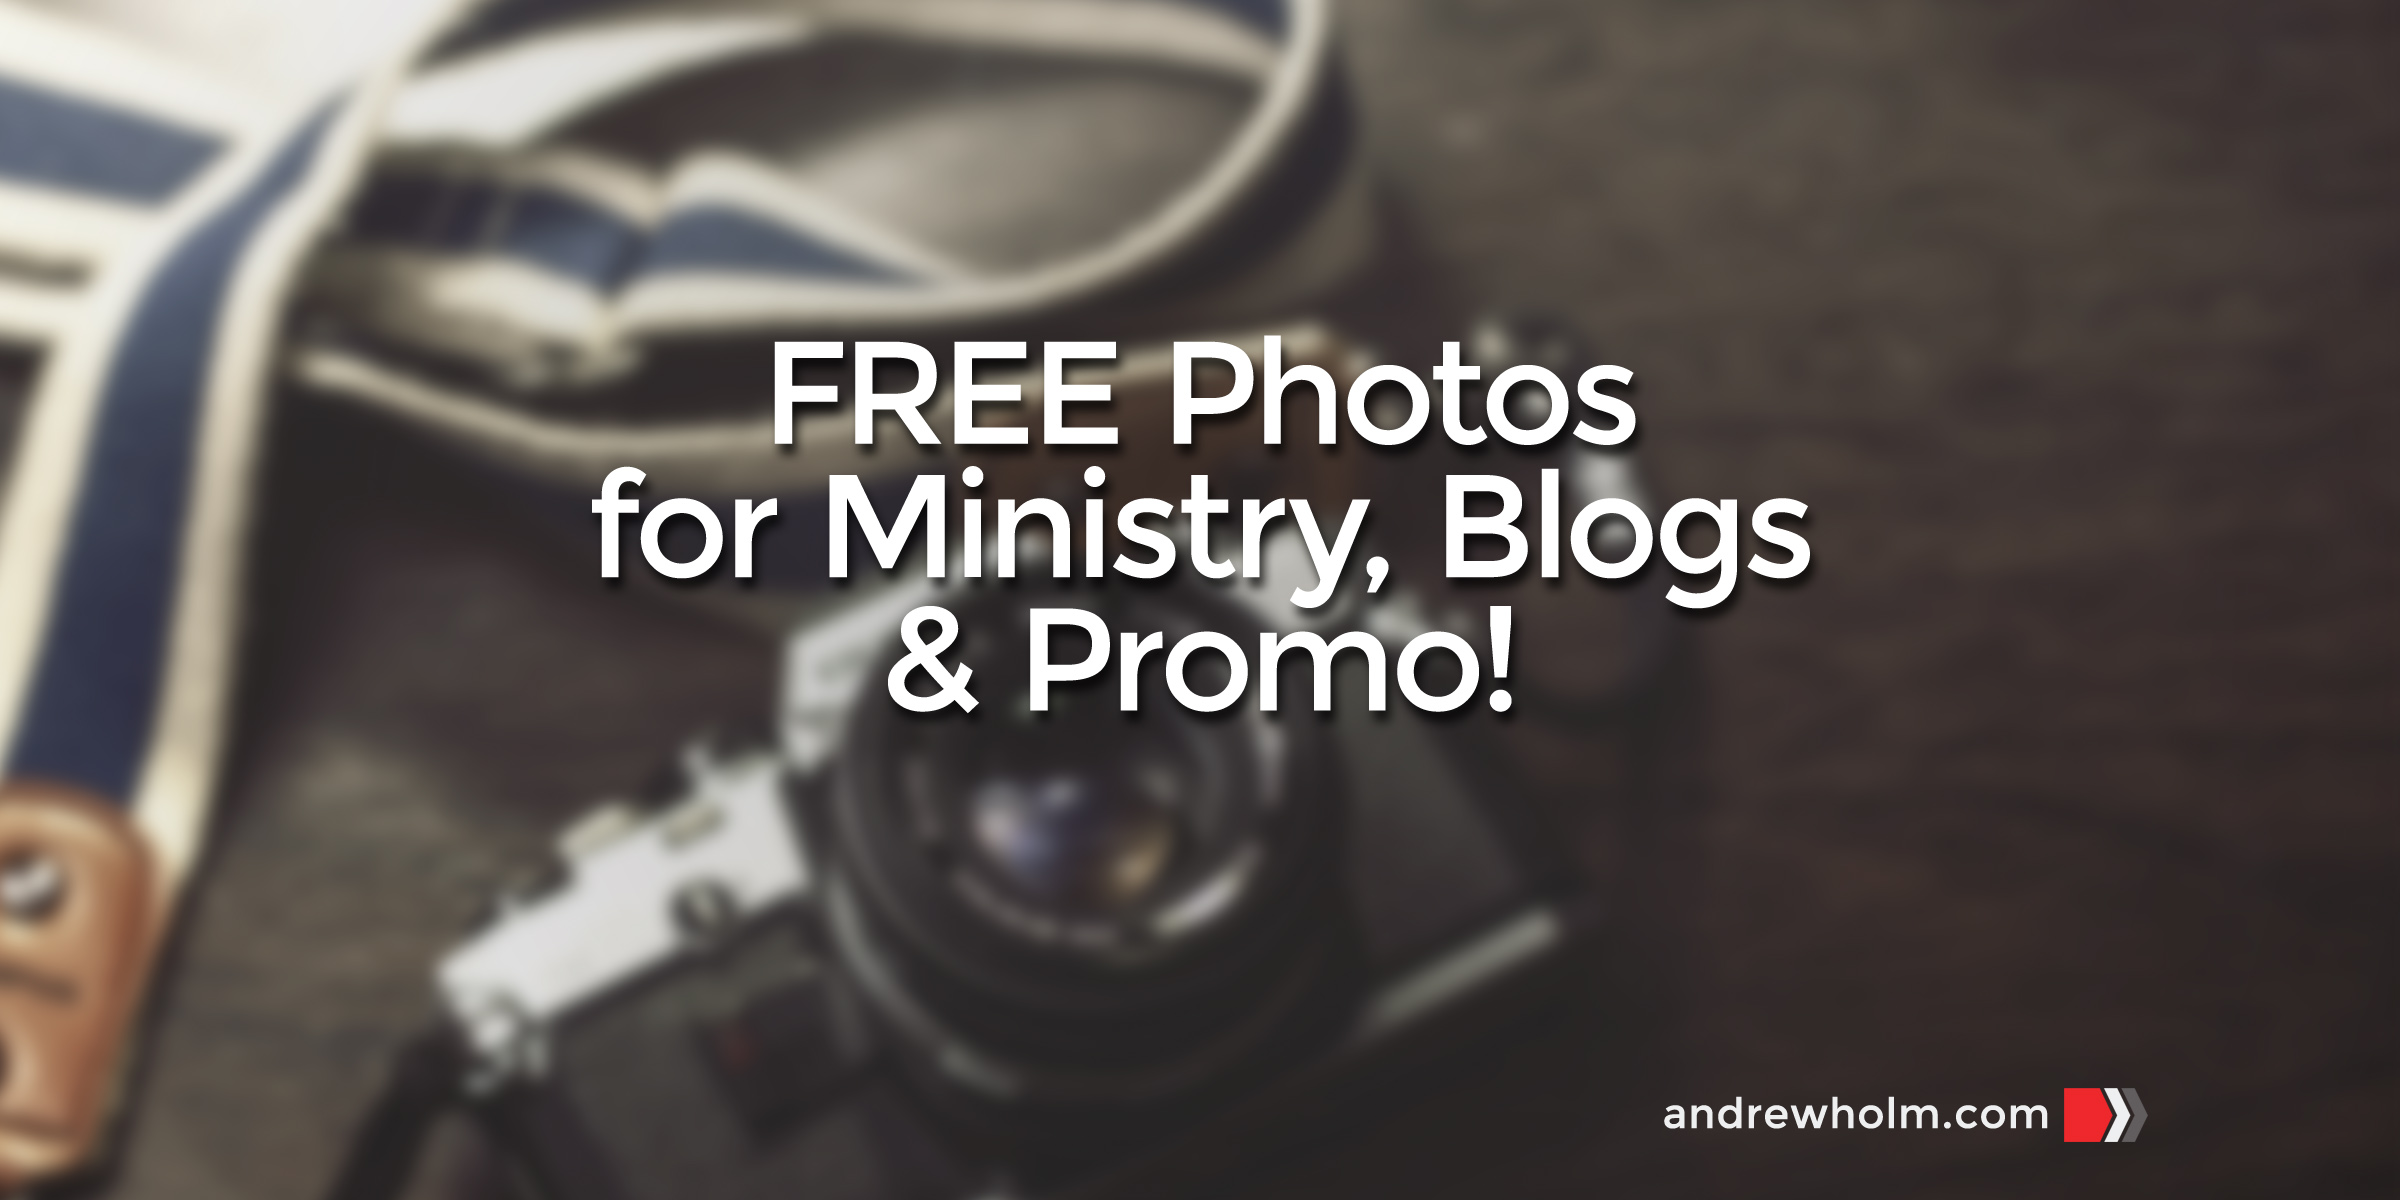 Free Photos For Ministry, Blogs & Promo